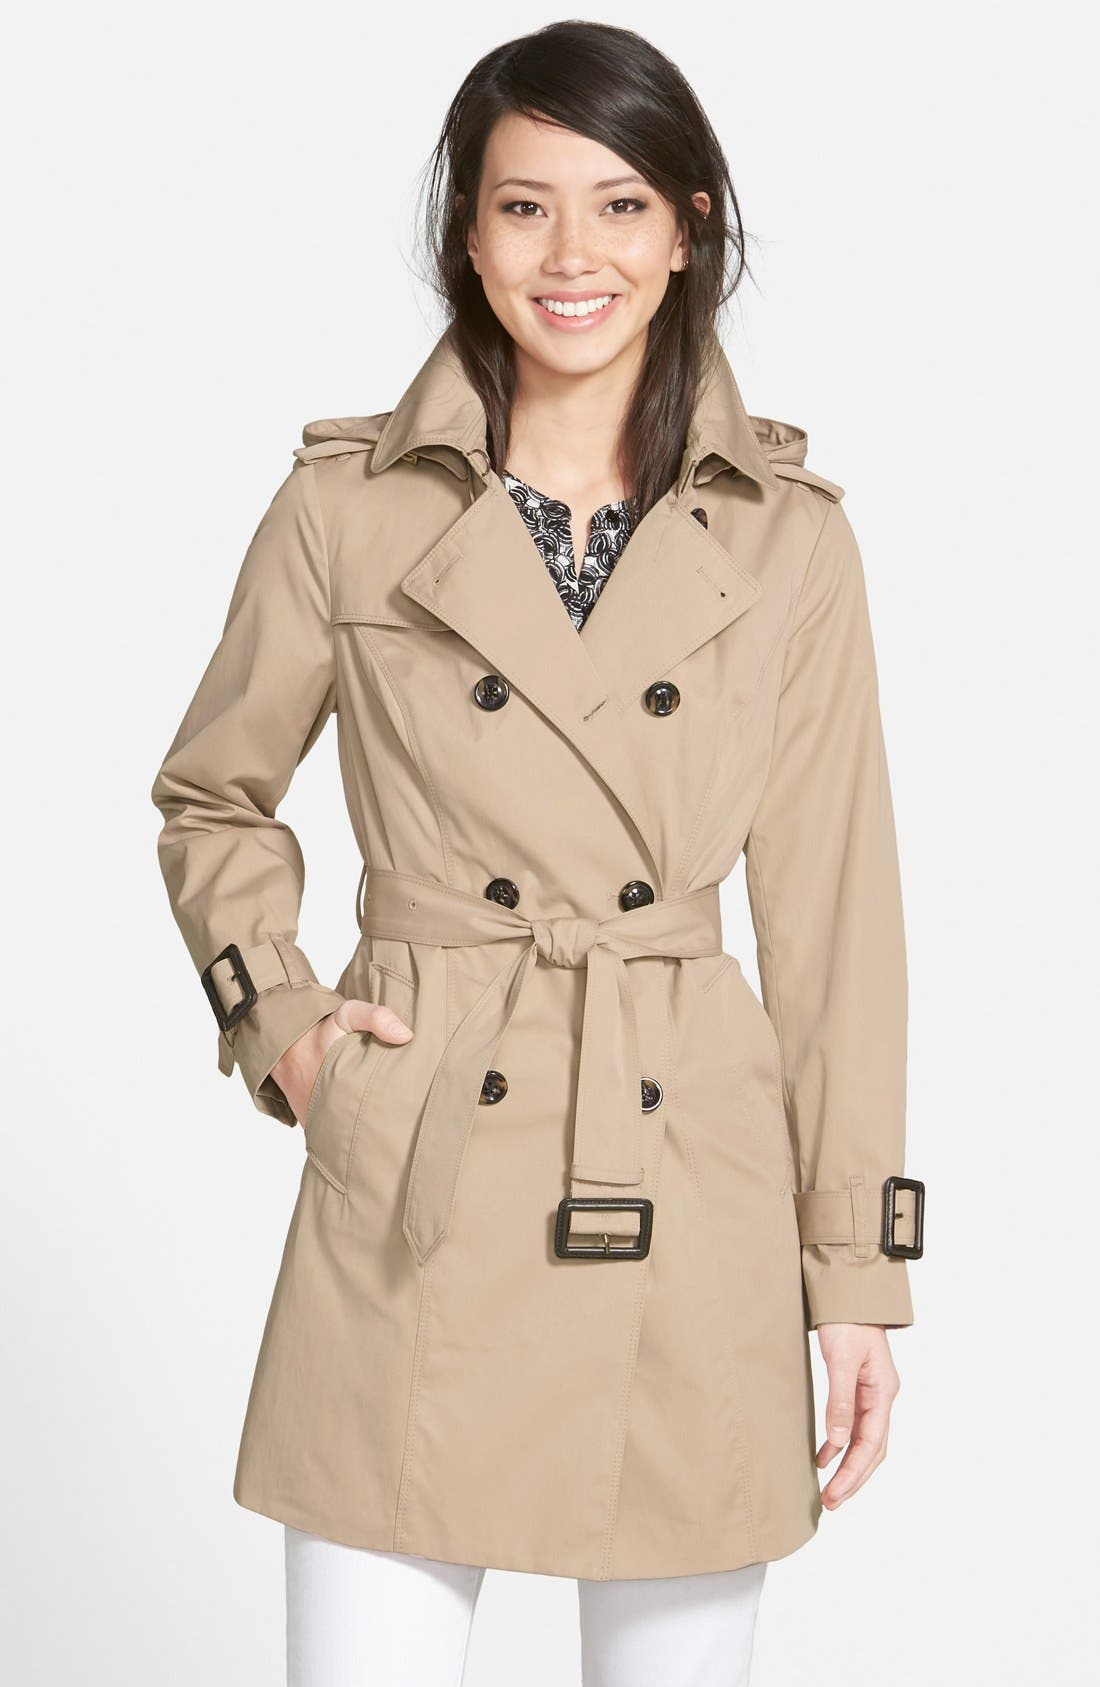 Alternate Image 1 Selected - London Fog Heritage Trench Coat with Detachable Liner (Regular & Petite) (Nordstrom Exclusive)